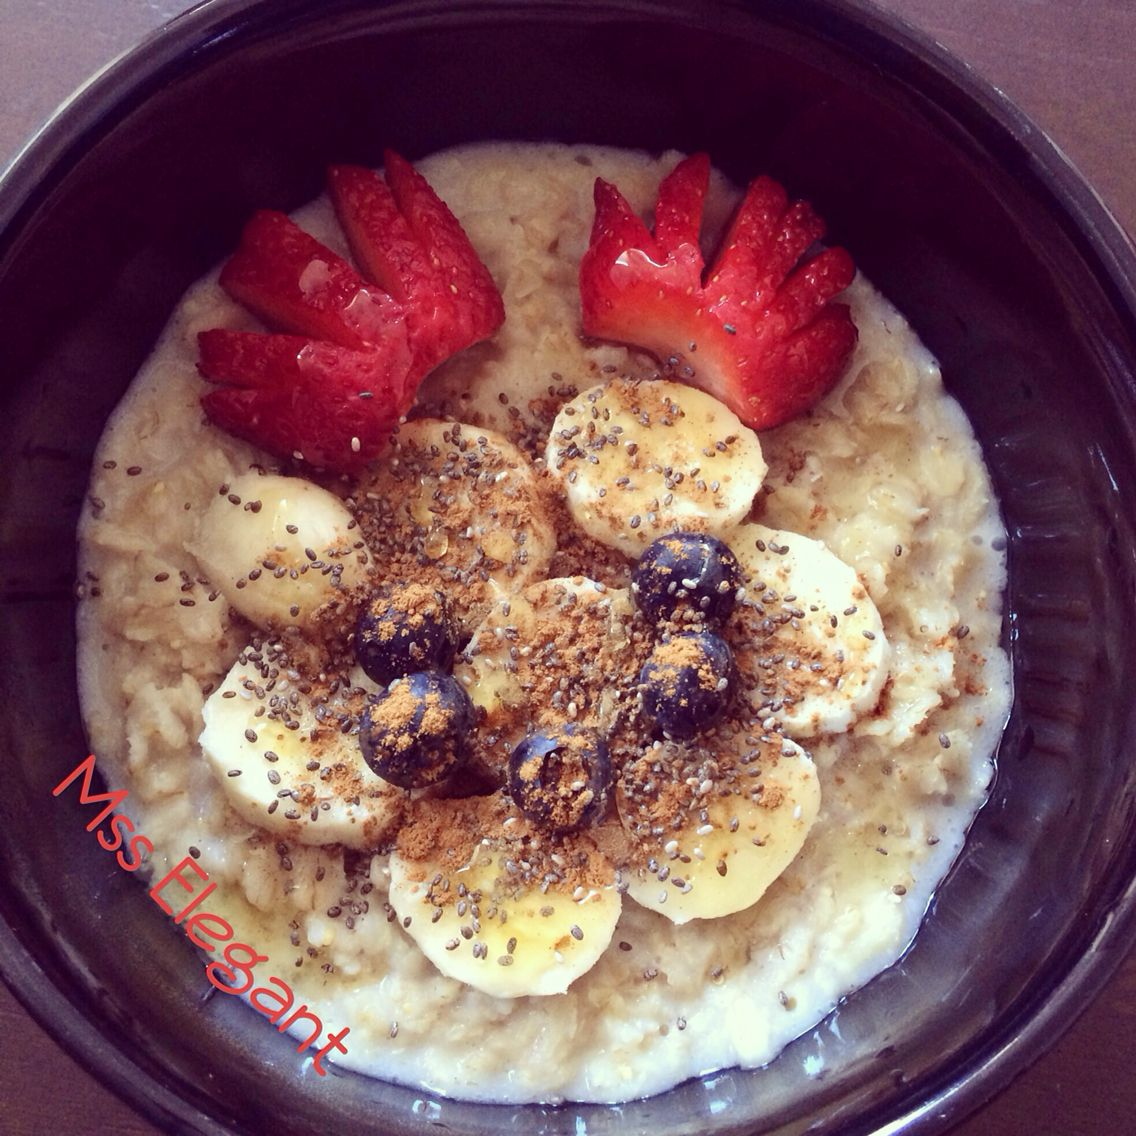 fitgirlsguide hot oatmeal, banana, chia seed, dried raisins, strawberry, honey almond milk, easy breakfast, healthy breakfast, quick breakfast, healthy.